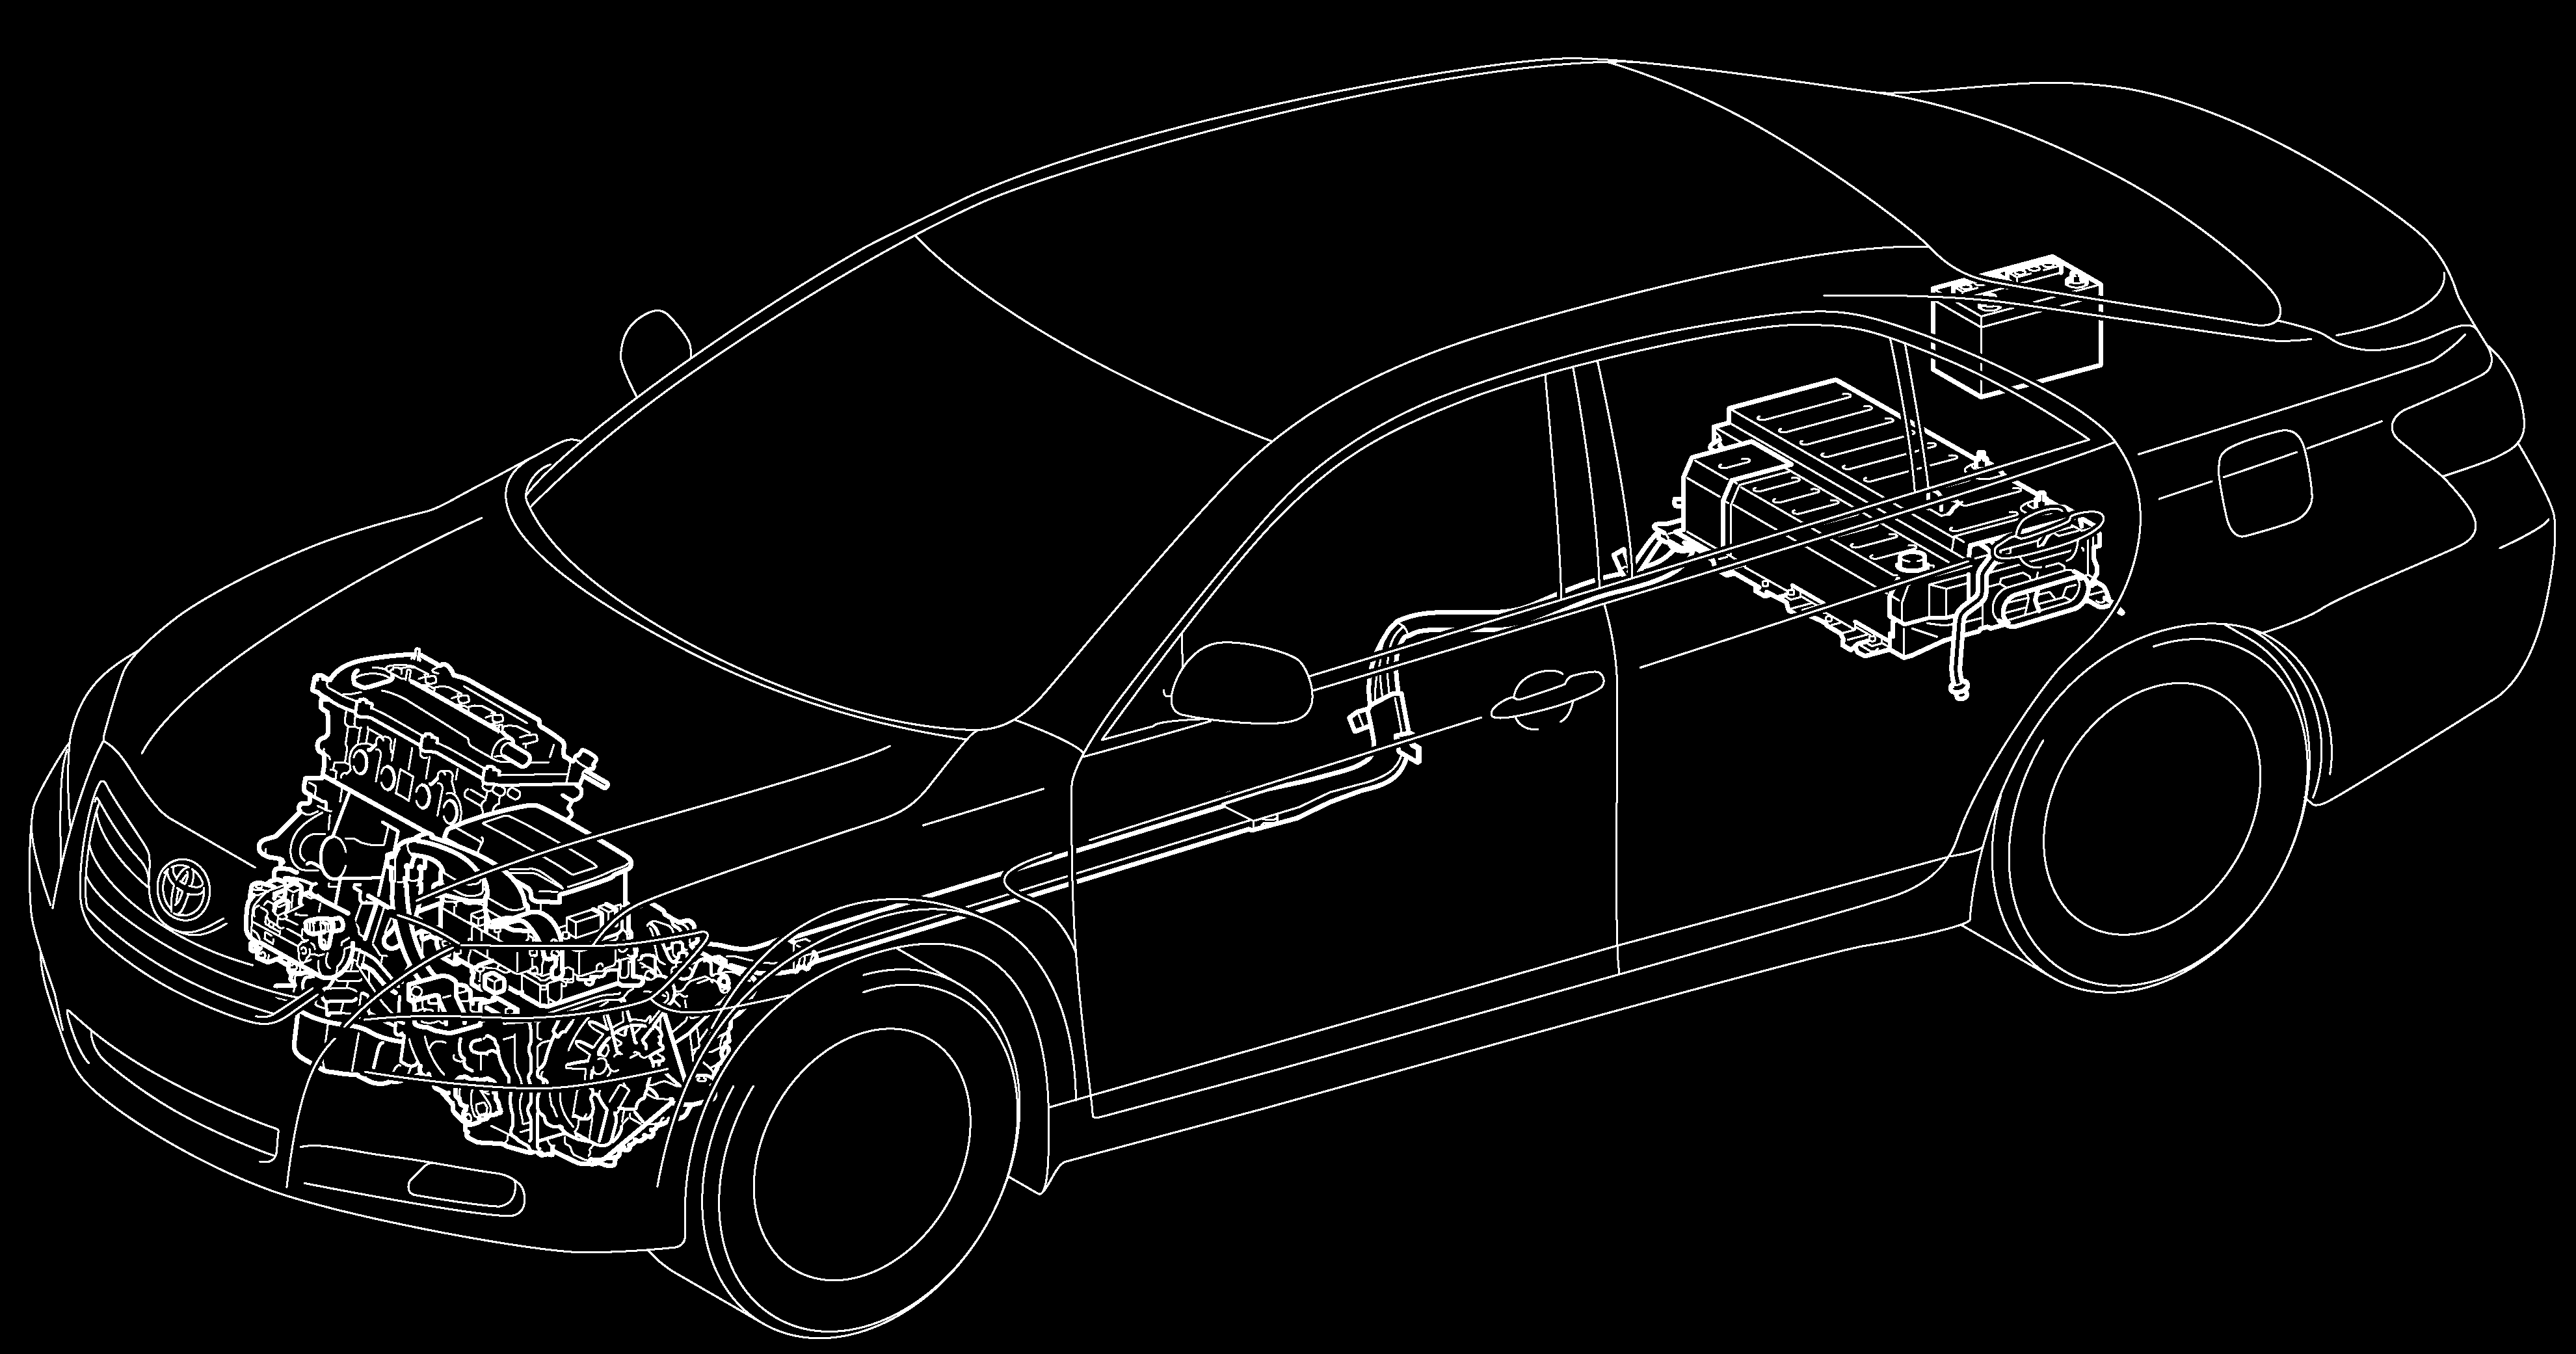 Toyota Tacoma 2015-2018 Service Manual: Open in Driver Side Electrical Antenna Circuit (B27A1)